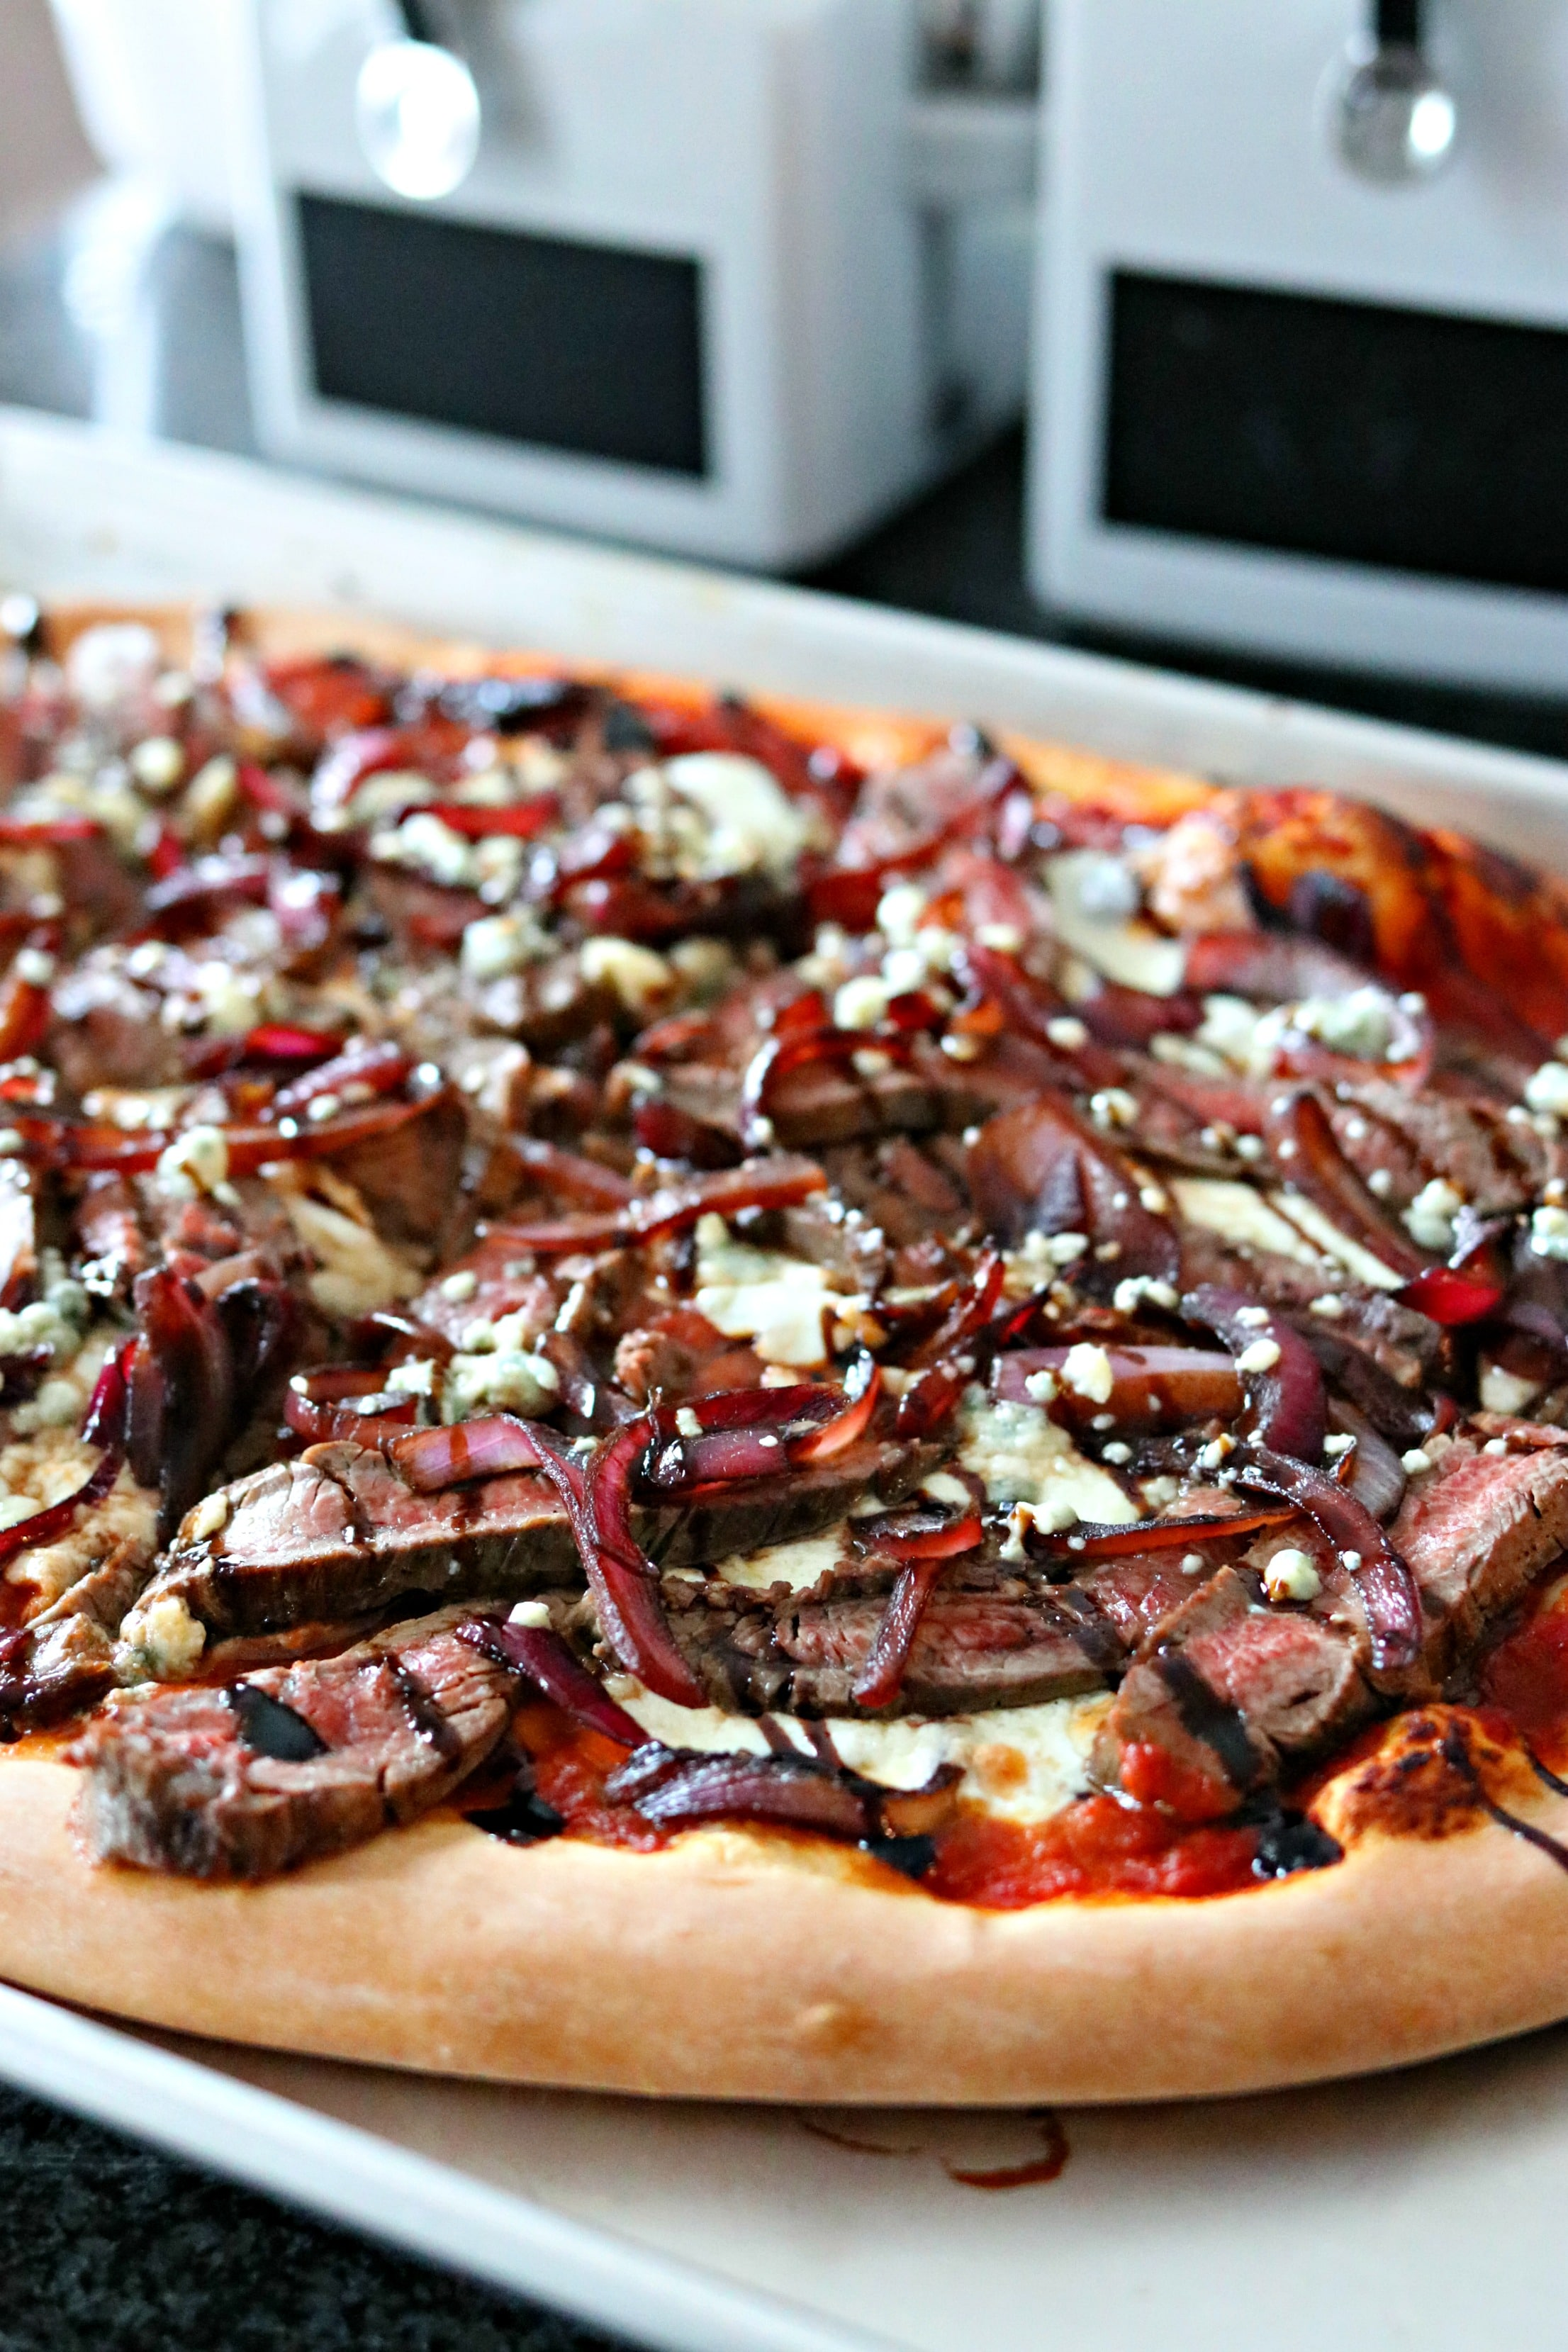 Steak & Blue Cheese Pizza on a plate